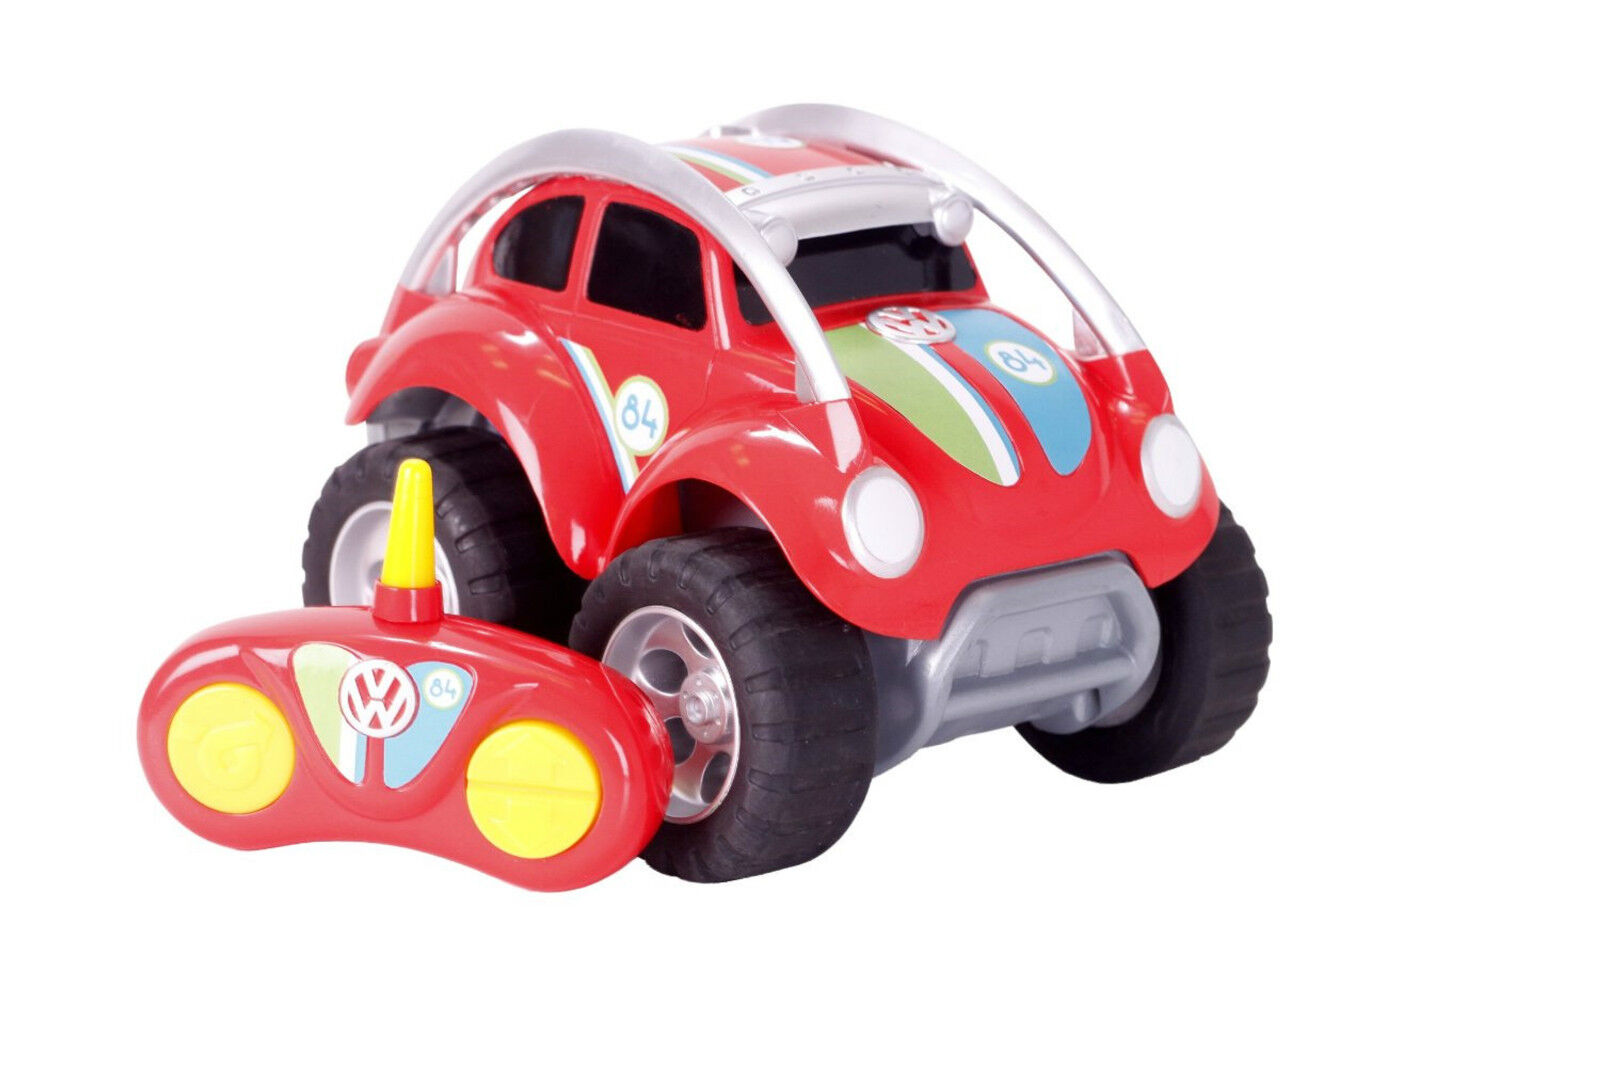 VolksWagen Beetle VDubs RC Roll Over Remote Control Car Ages 3+ Toy Boys Girls